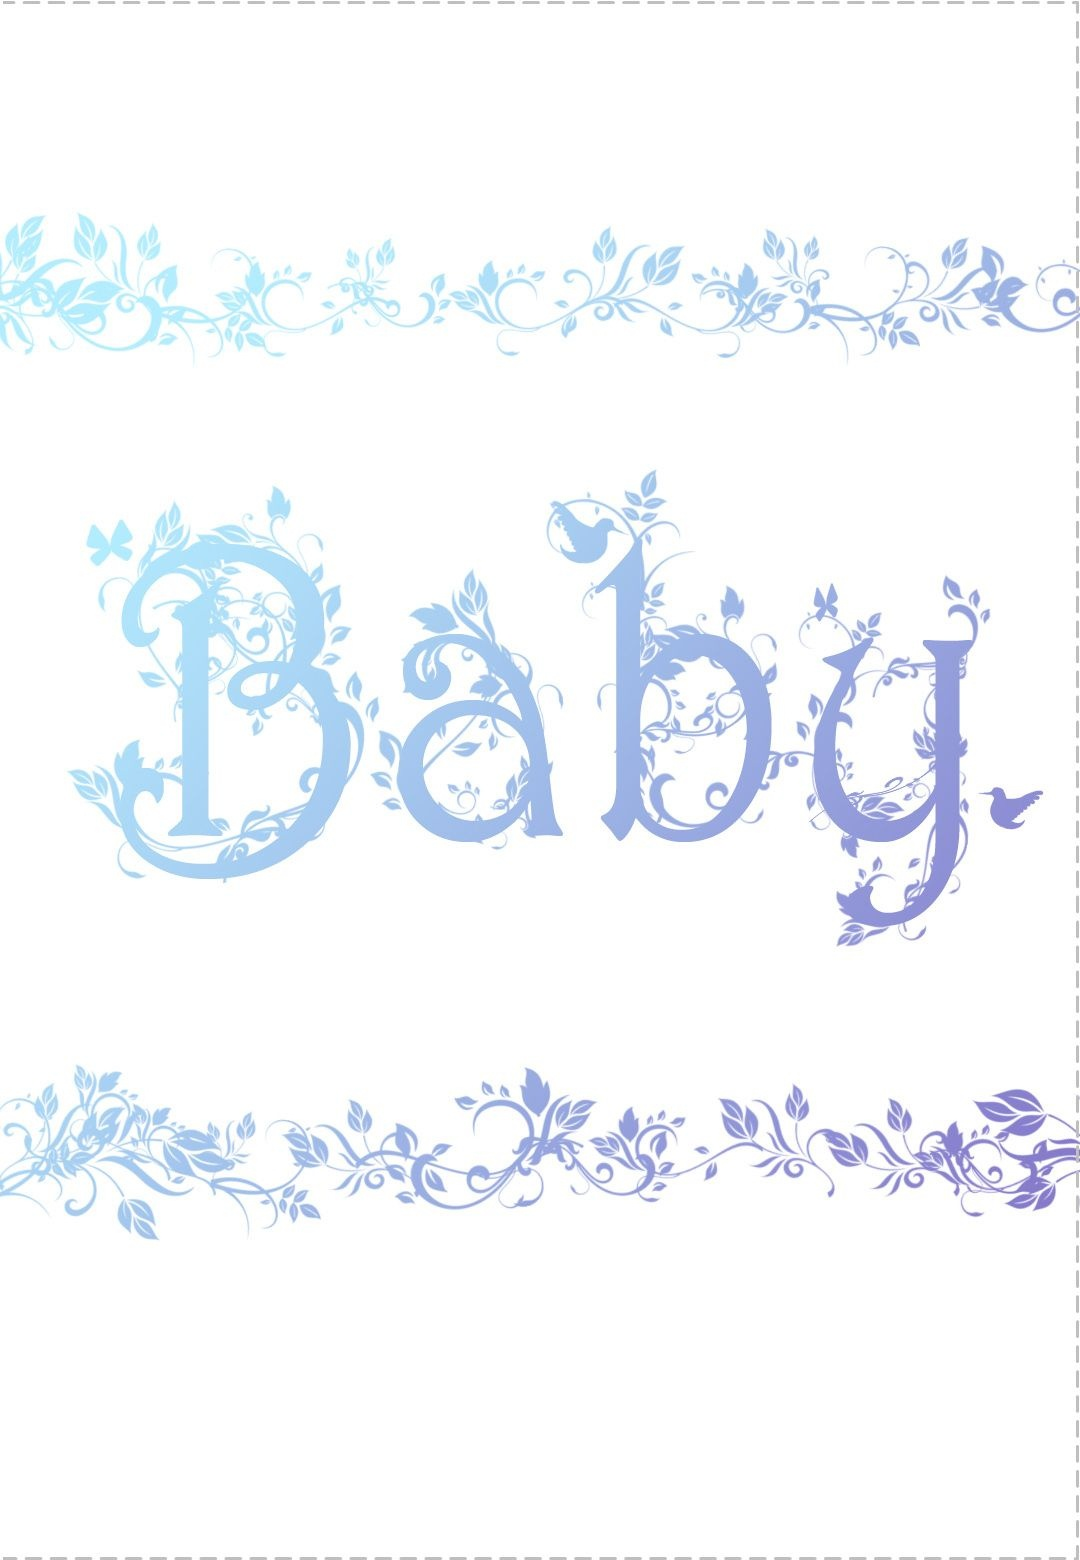 Free Printable Decorated Baby Card Greeting Card | Baby Shower Ideas - Free Printable Baby Cards